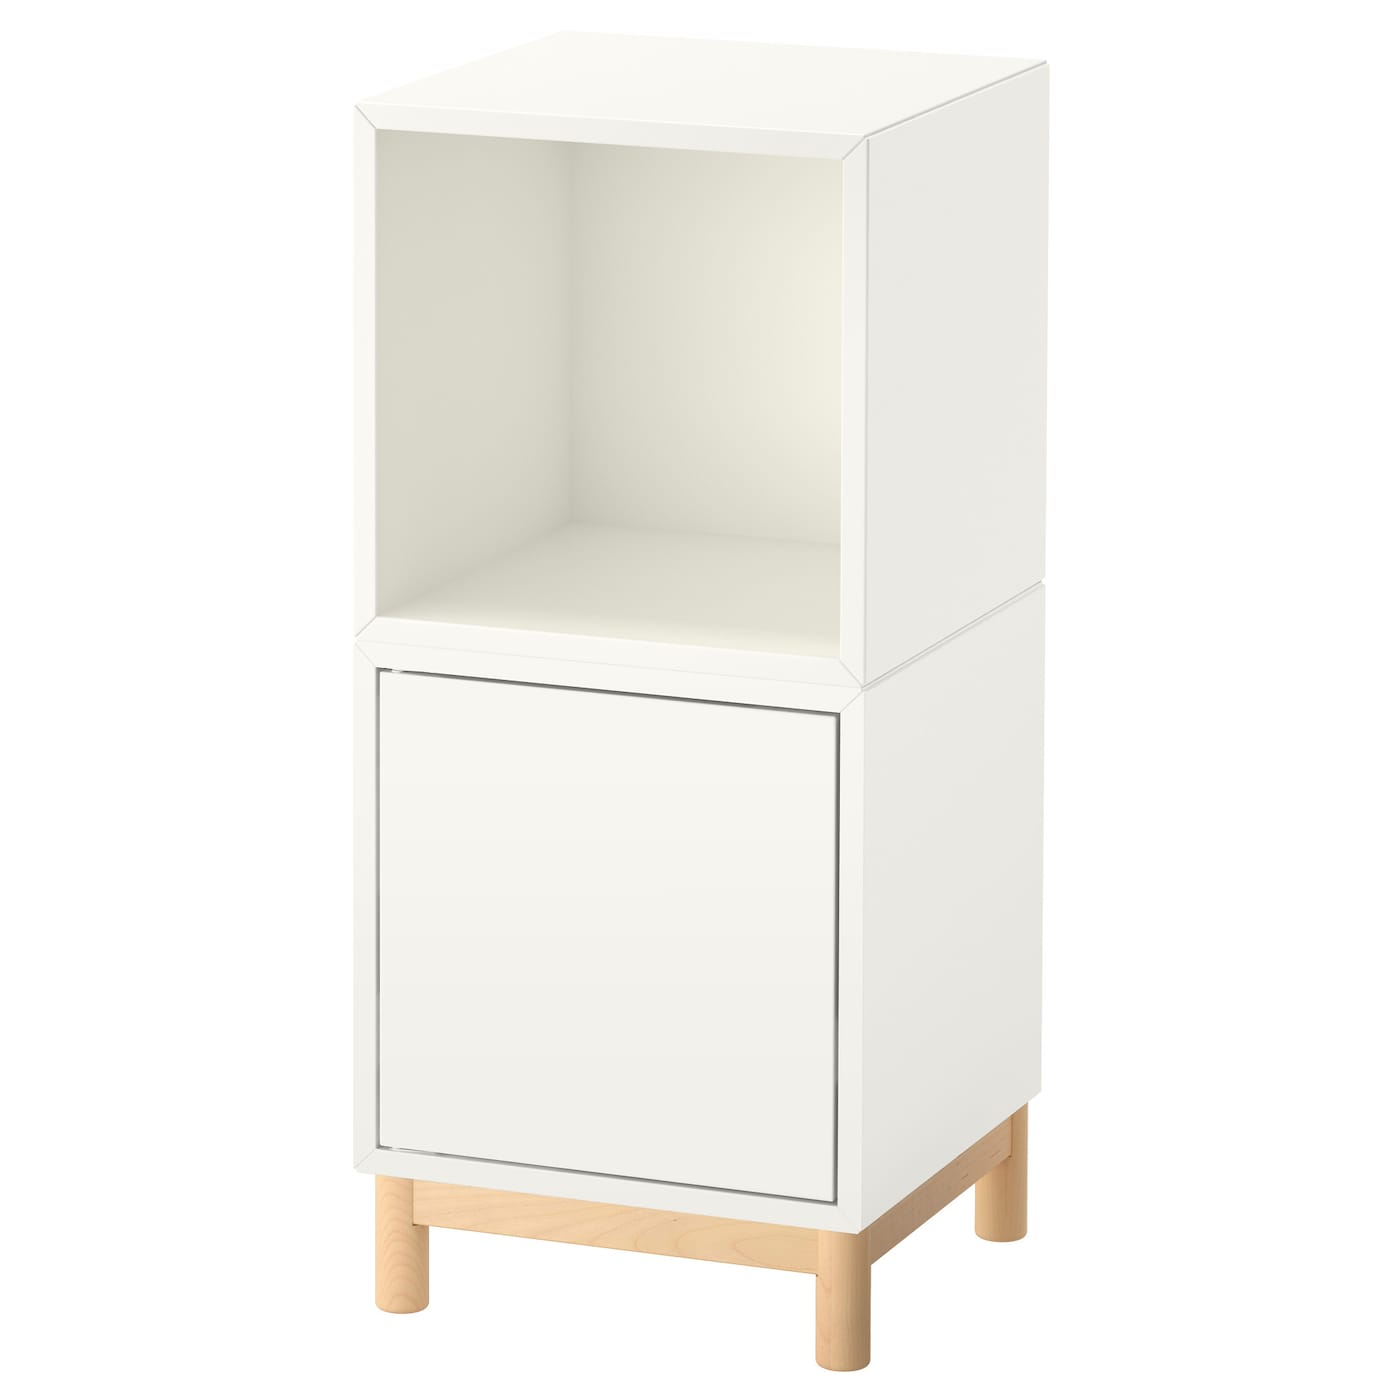 eket cabinet combination with legs white 35 x 35 x 80 cm. Black Bedroom Furniture Sets. Home Design Ideas